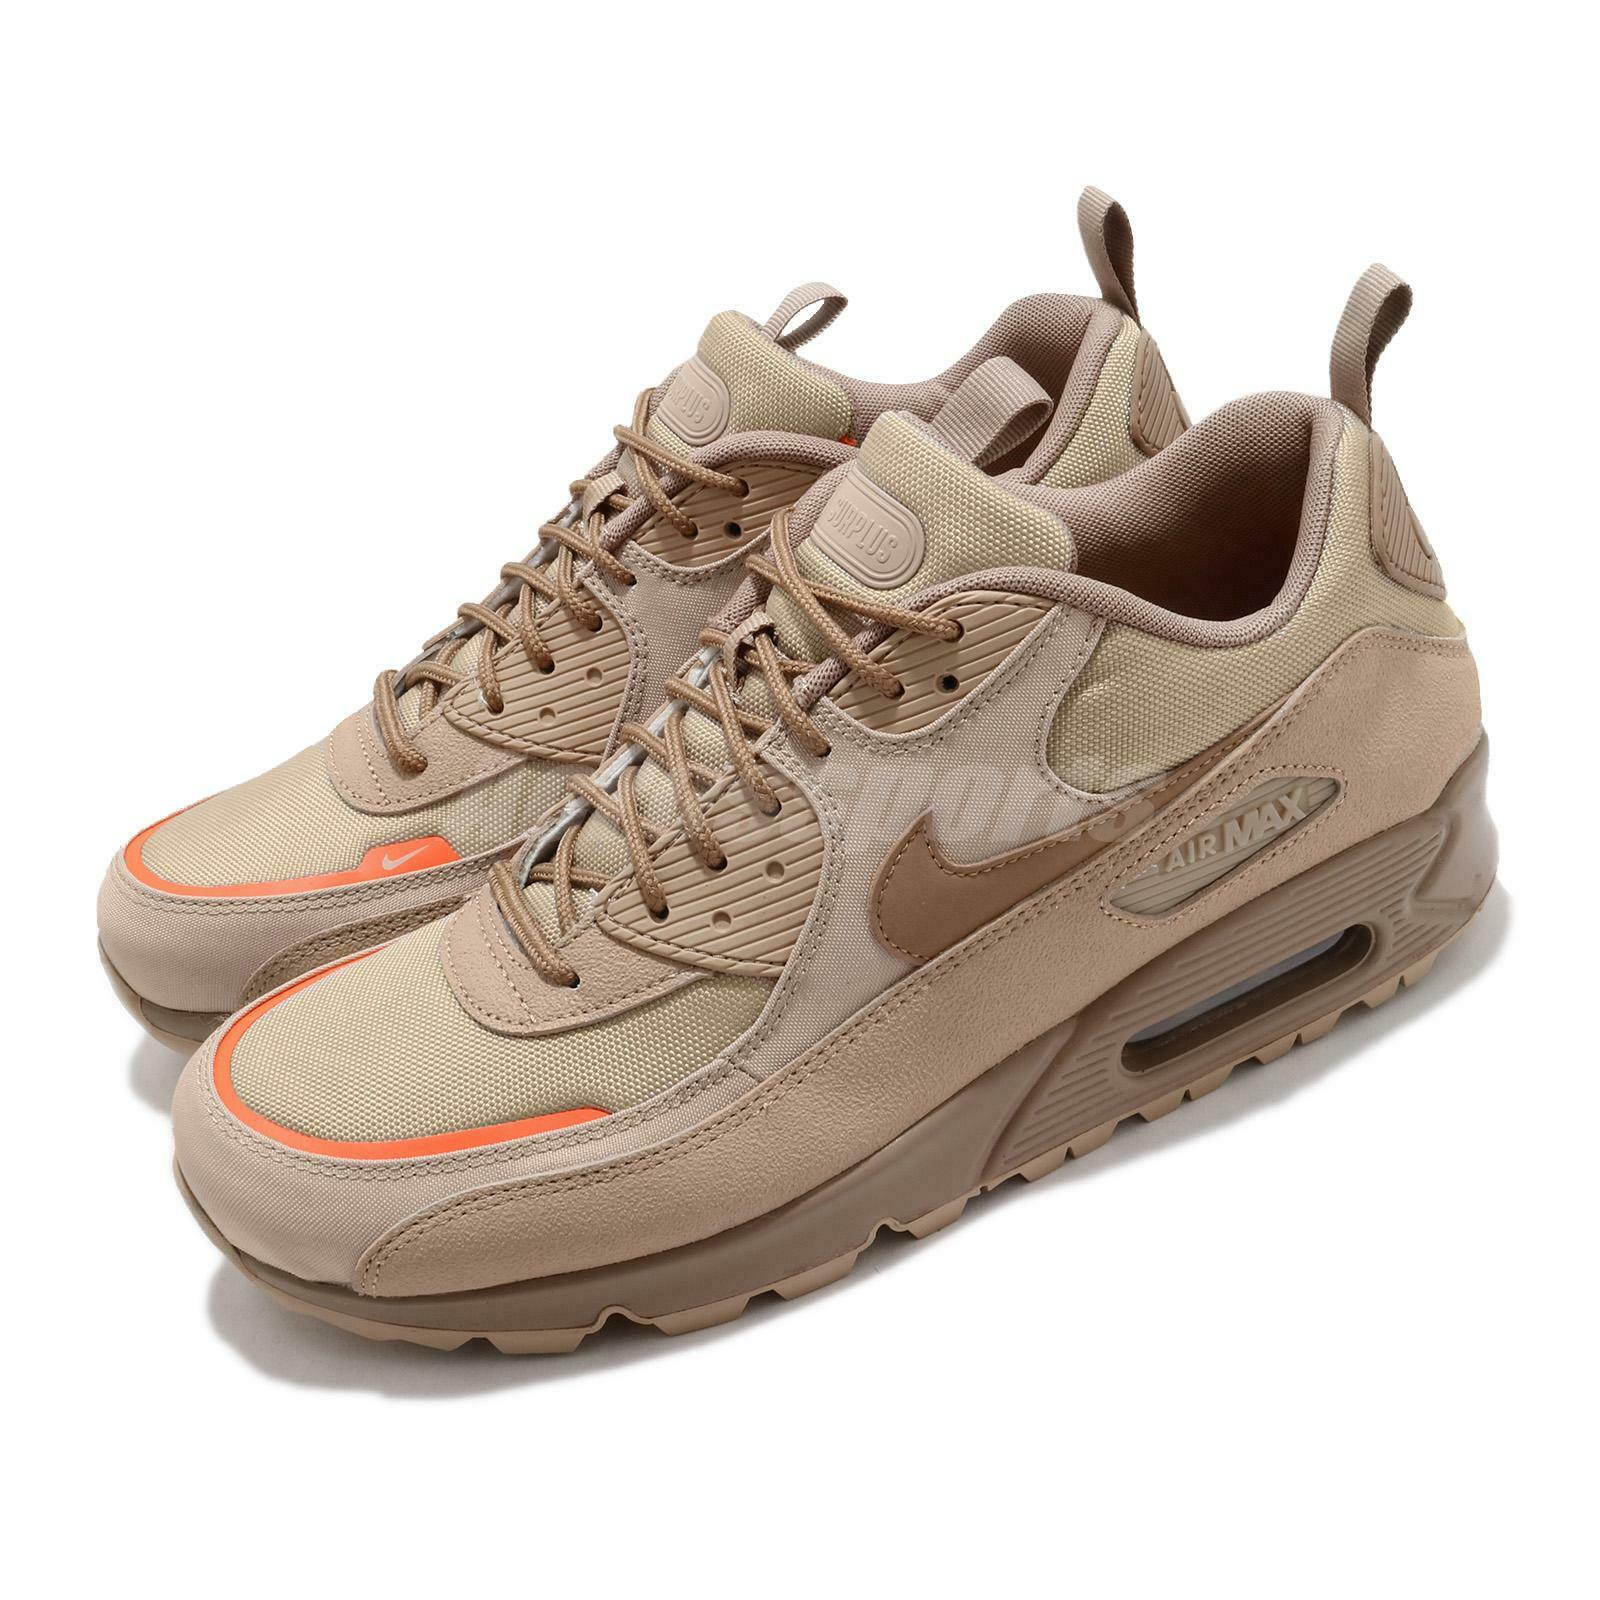 Size 8 - Nike Air Max 90 Surplus Brown 2020 for sale online   eBay